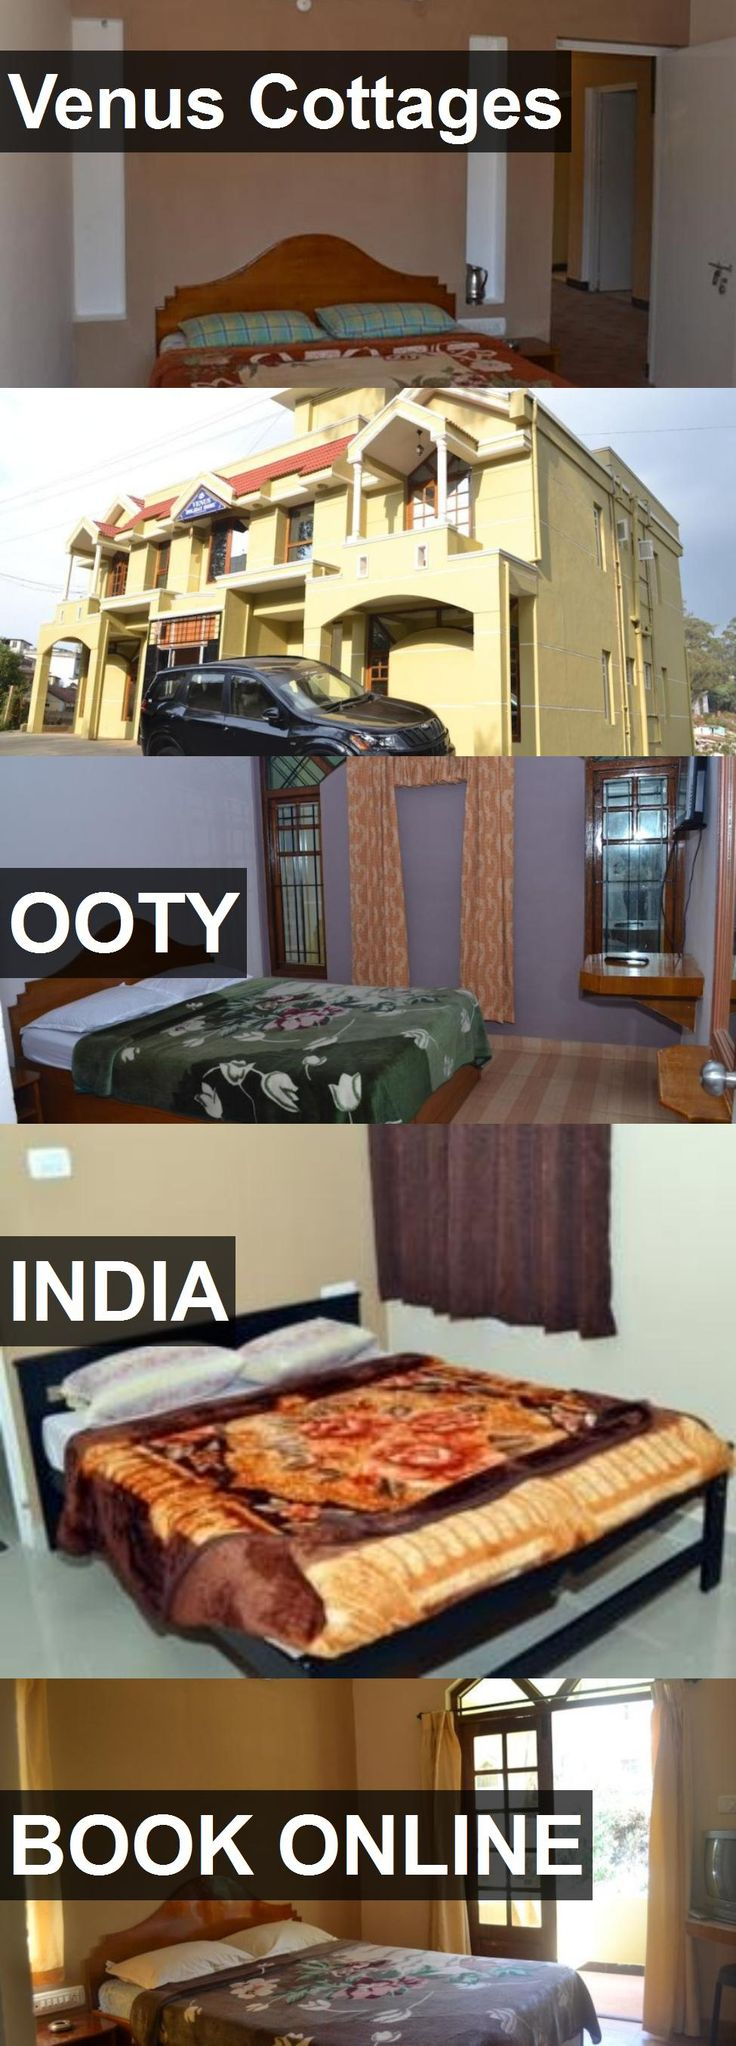 Hotel Venus Cottages in Ooty, India. For more information, photos, reviews and best prices please follow the link. #India #Ooty #travel #vacation #hotel